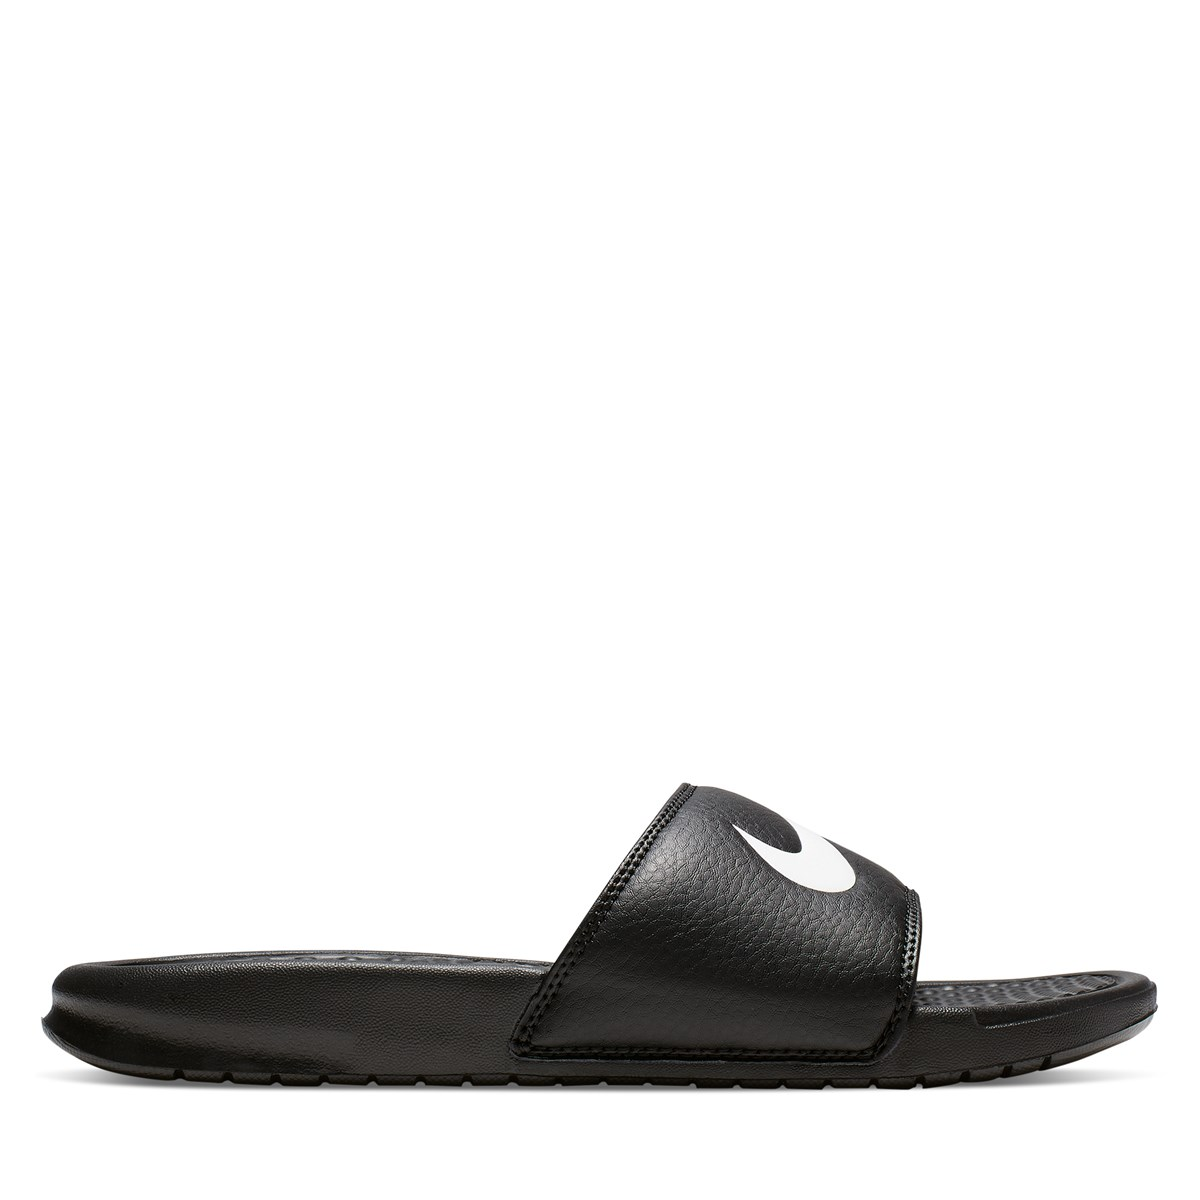 Women's Benassi Swoosh Slides in Black